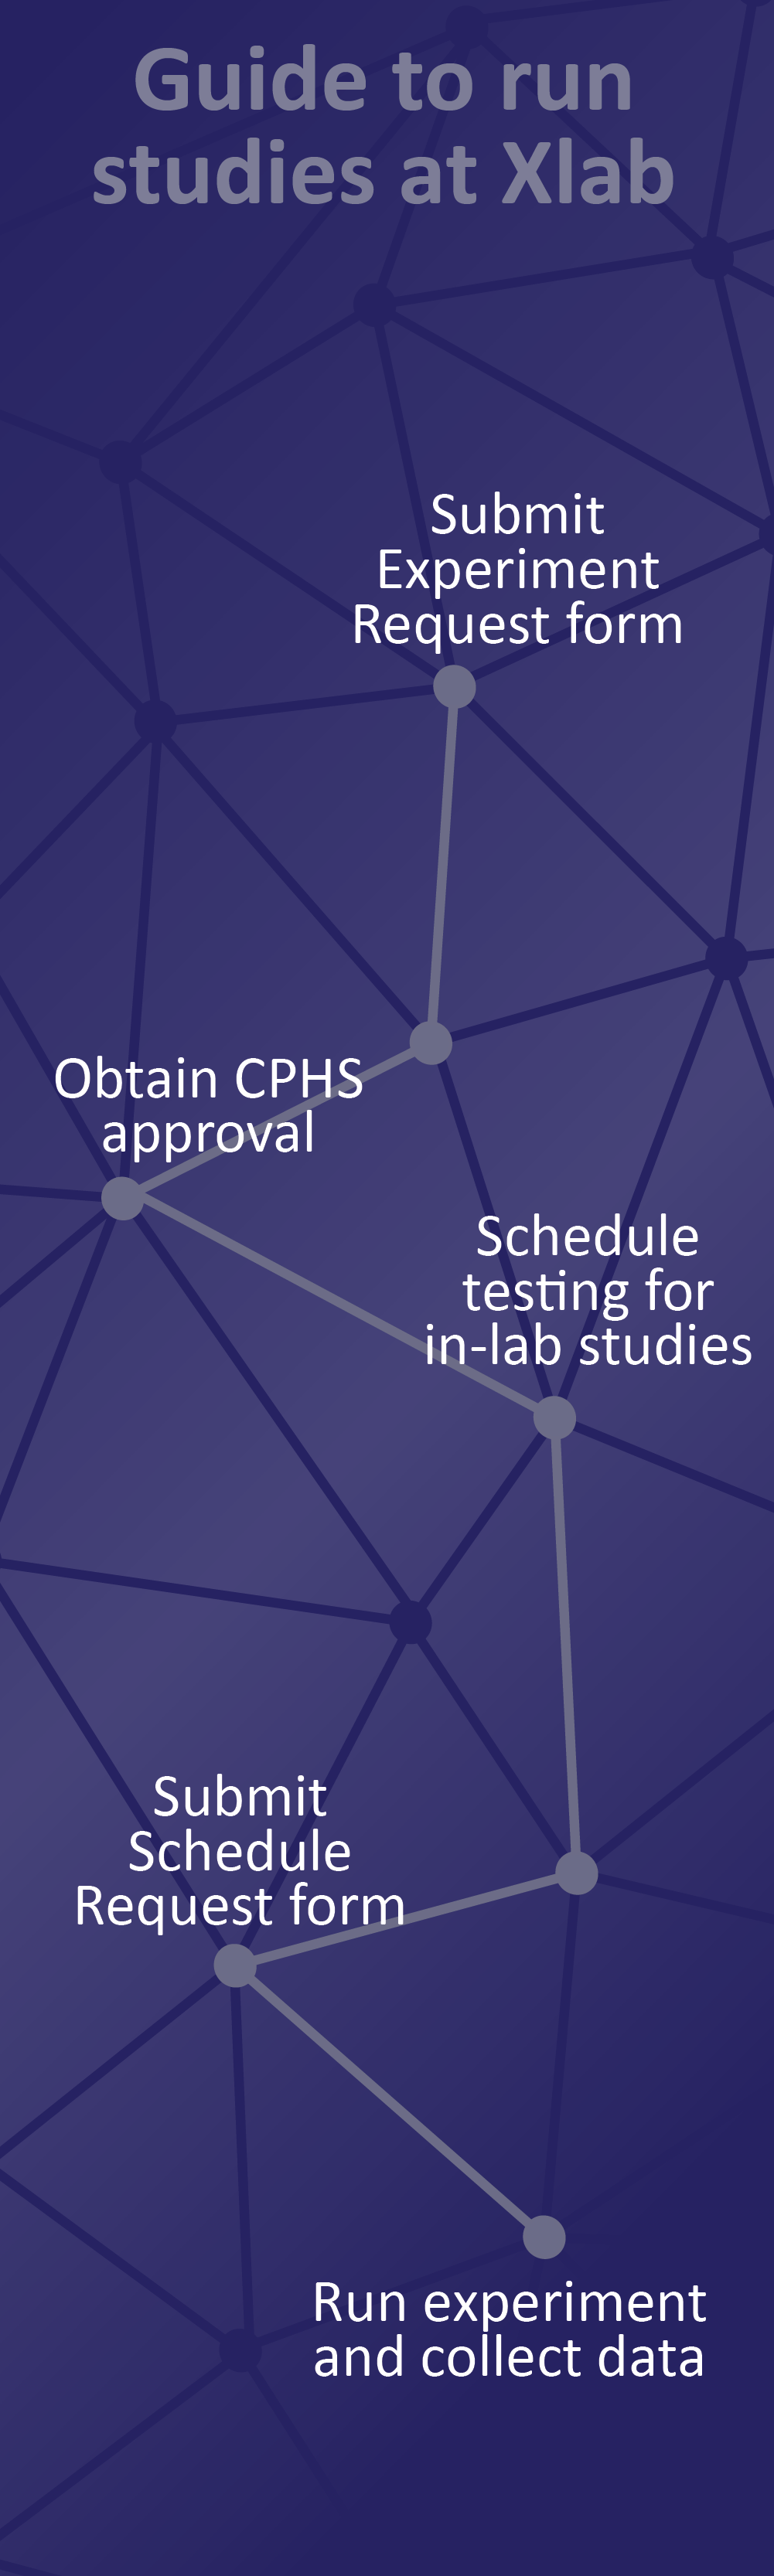 Graphic for Guide to run studies at Xlab: Submit Experiment Request form -- Obtain CPHS approval -- Schedule testing for in-lab studies -- Submit Schedule Request form -- Run experiment and collect data.